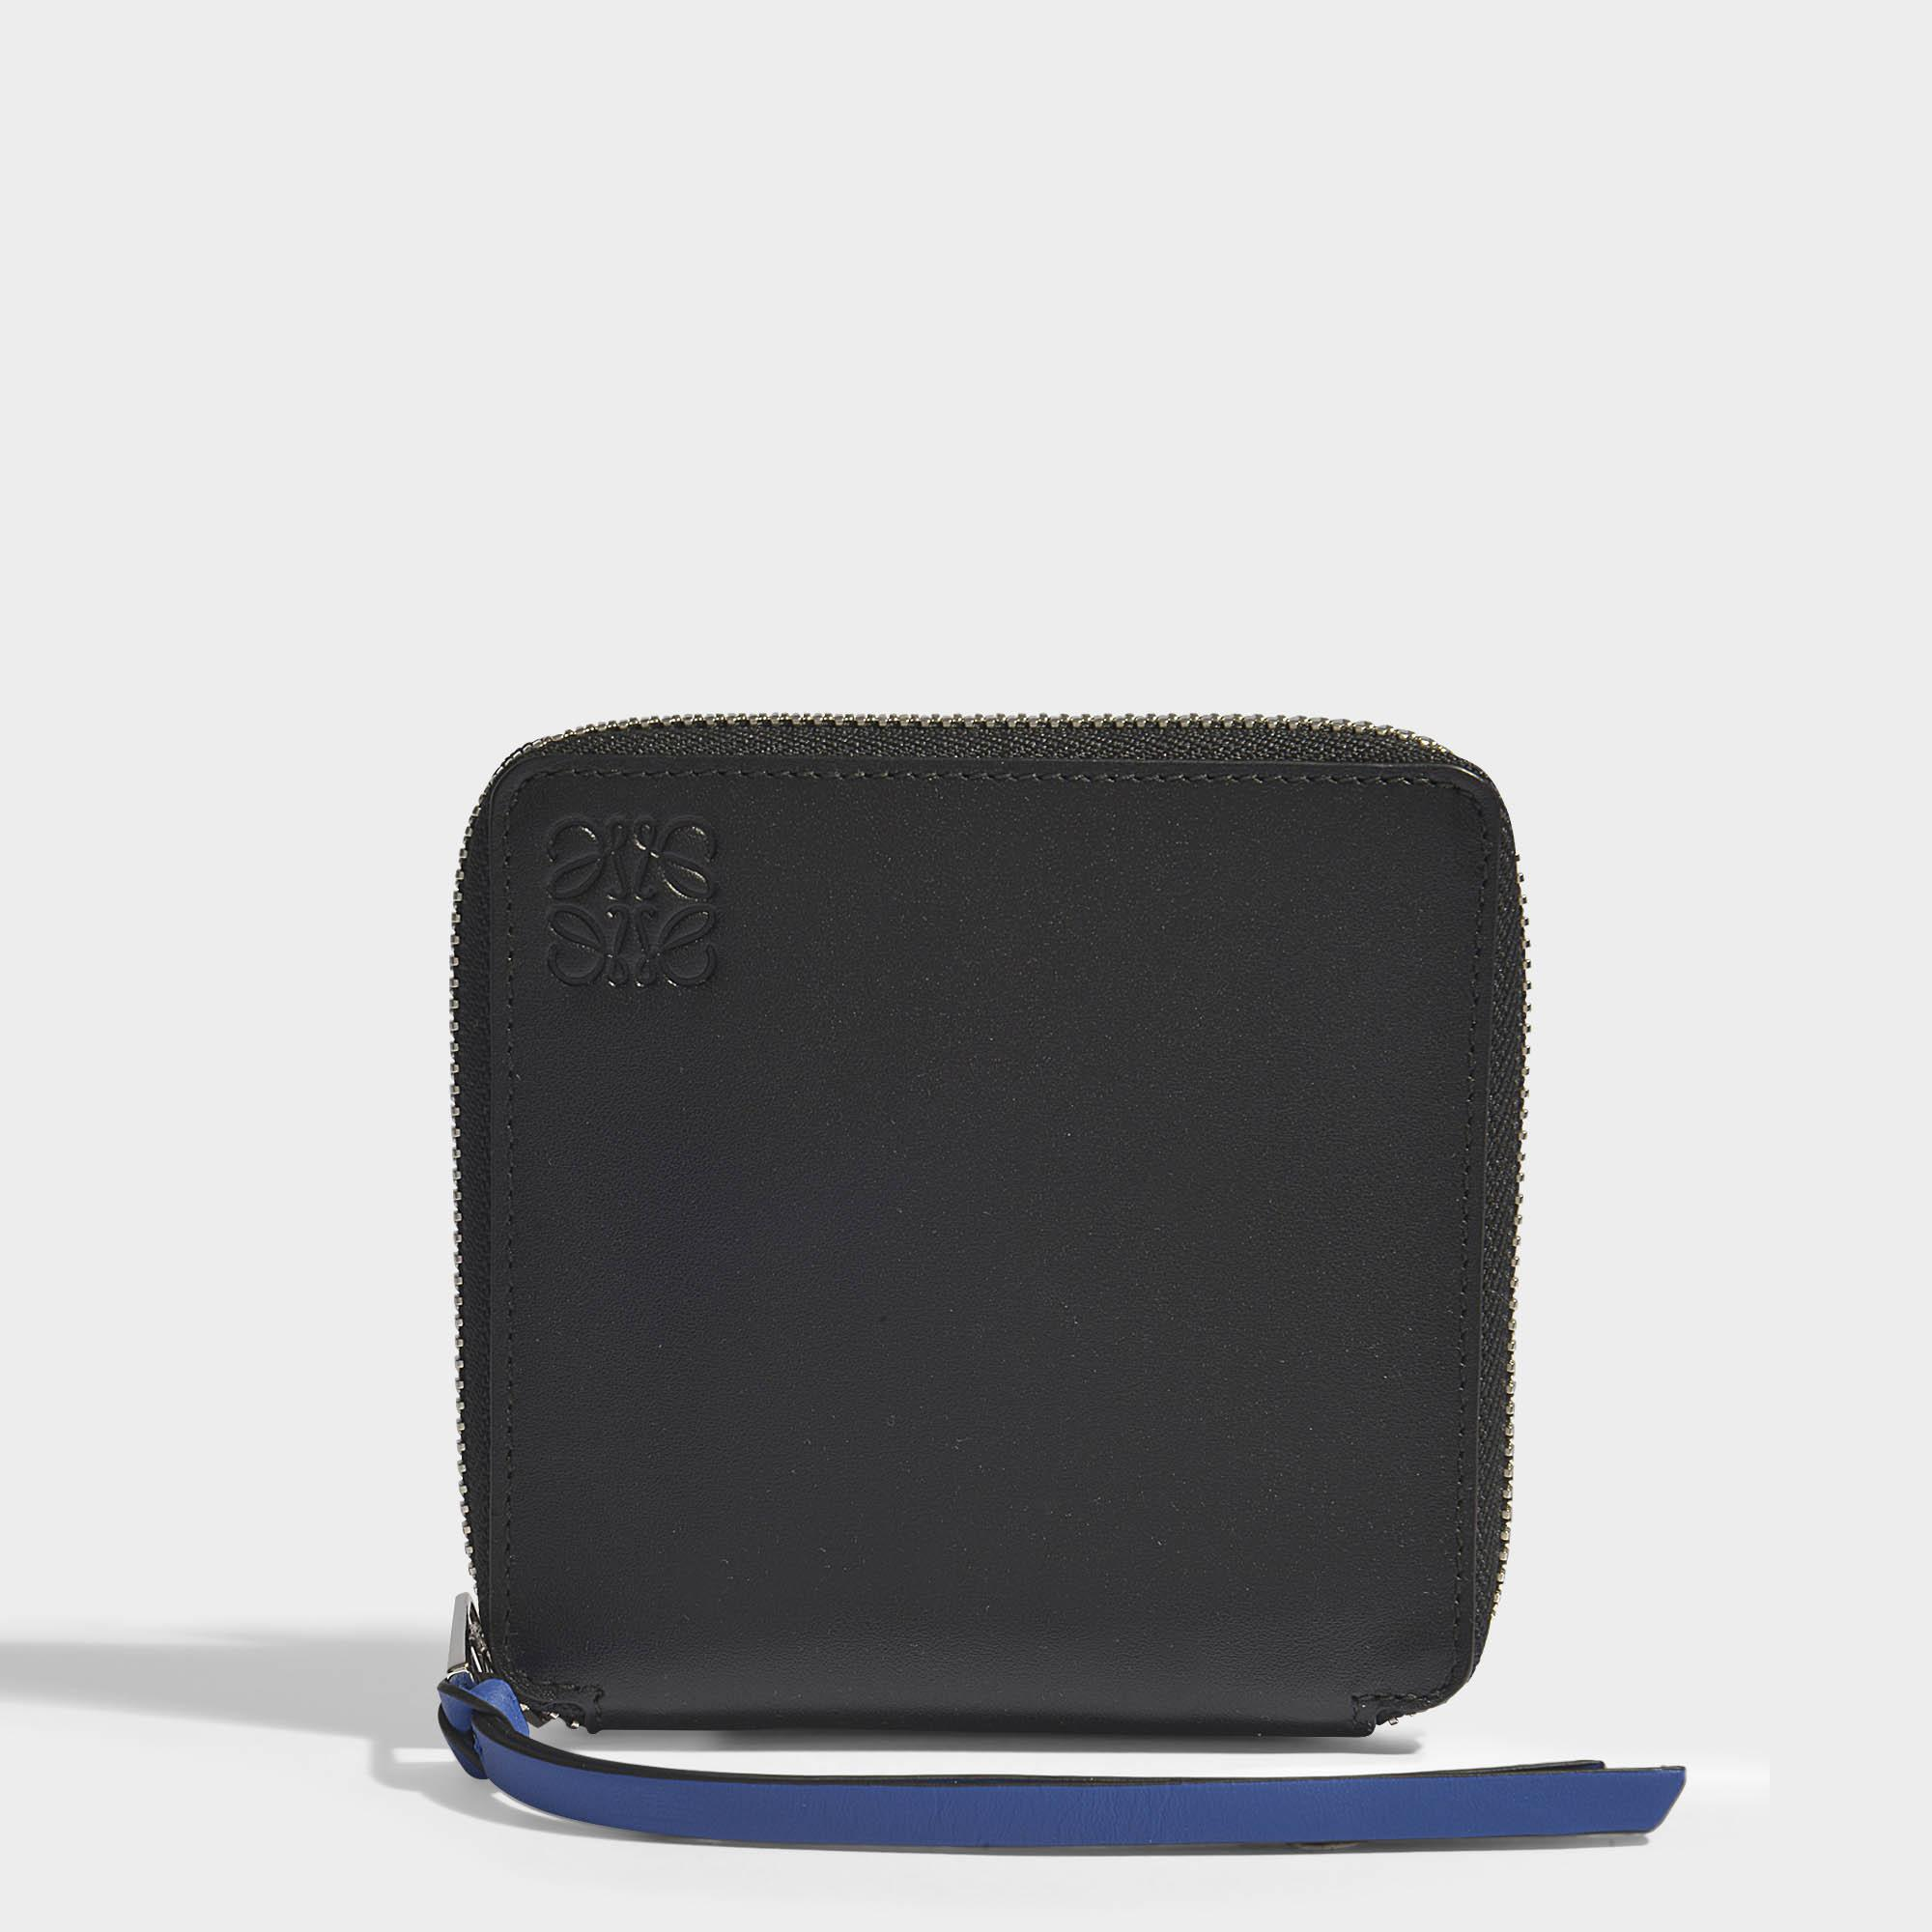 Rainbow Bifold/Coin Wallet in Black and Multicolour Soft Calfskin Loewe VKrrDNj